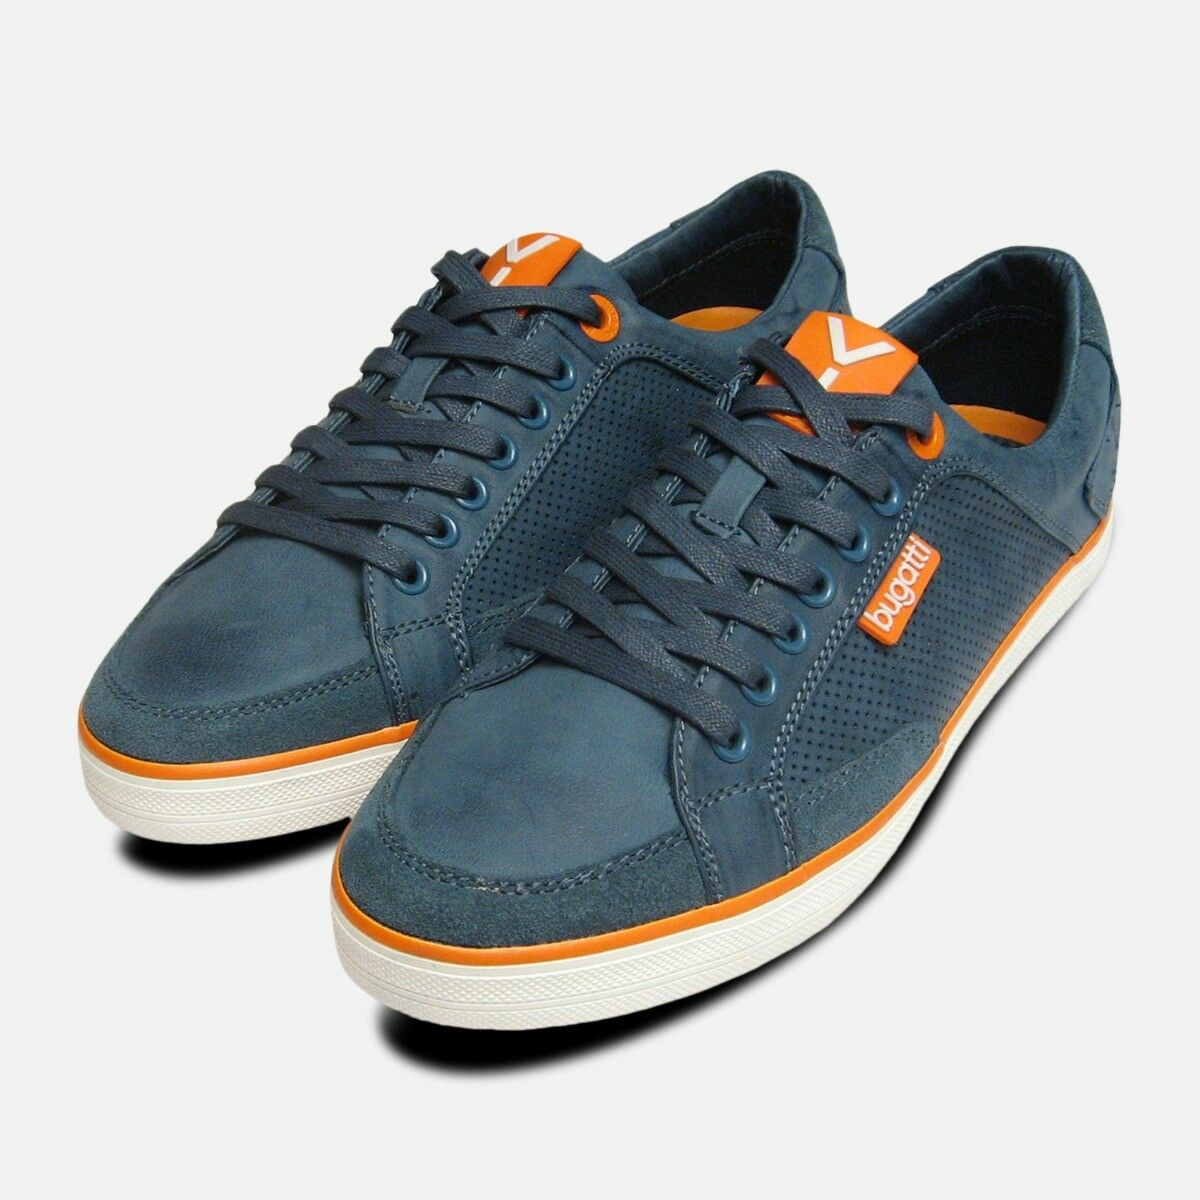 Mens Navy bluee Leather Designer Trainers by Bugatti Sneakers